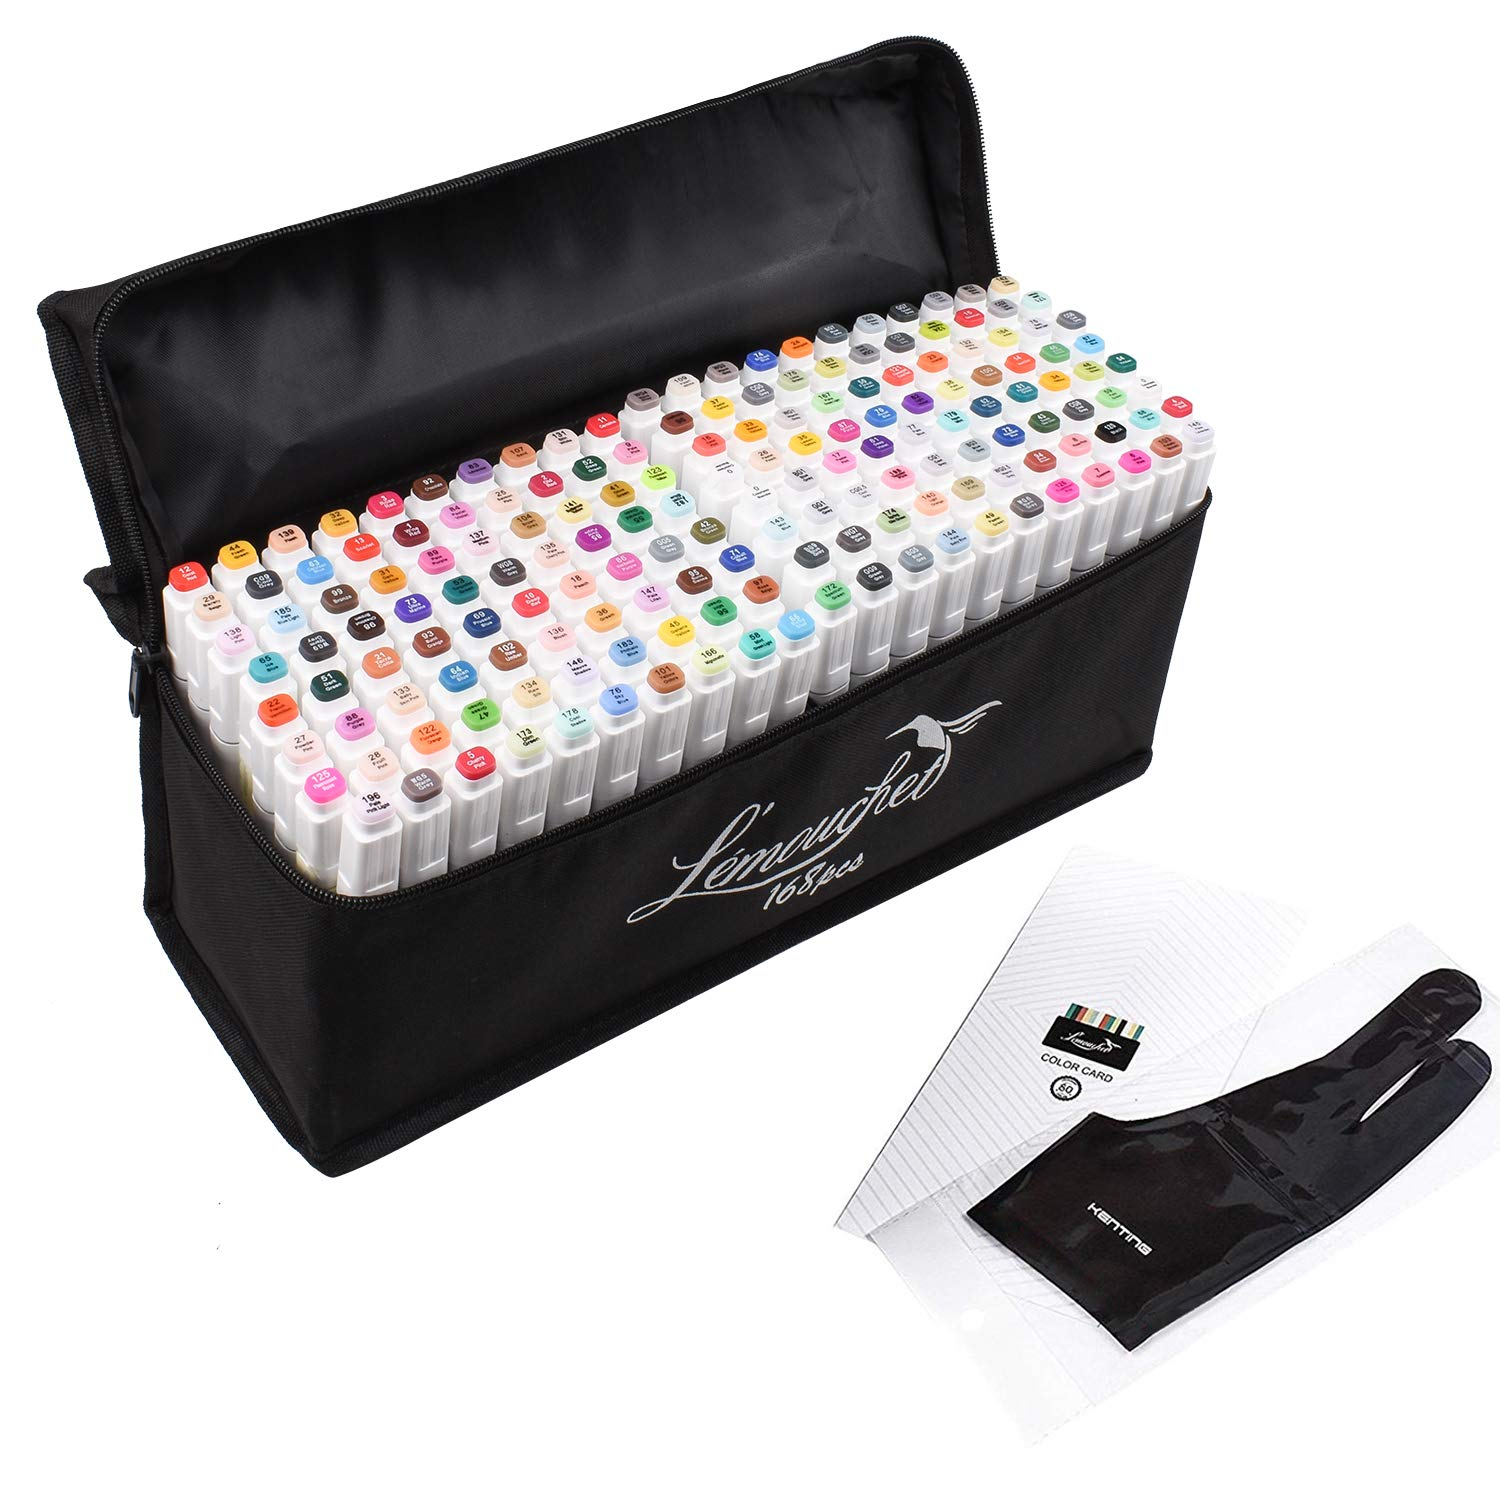 L/émouchet 168+2 Colours Dual Tips Art Marker Pens Colouring Markers Paint Pens for Kids /& Adults Painting Drawing Twin Marker Pens Set with Carrying Case for Sketch Graphic